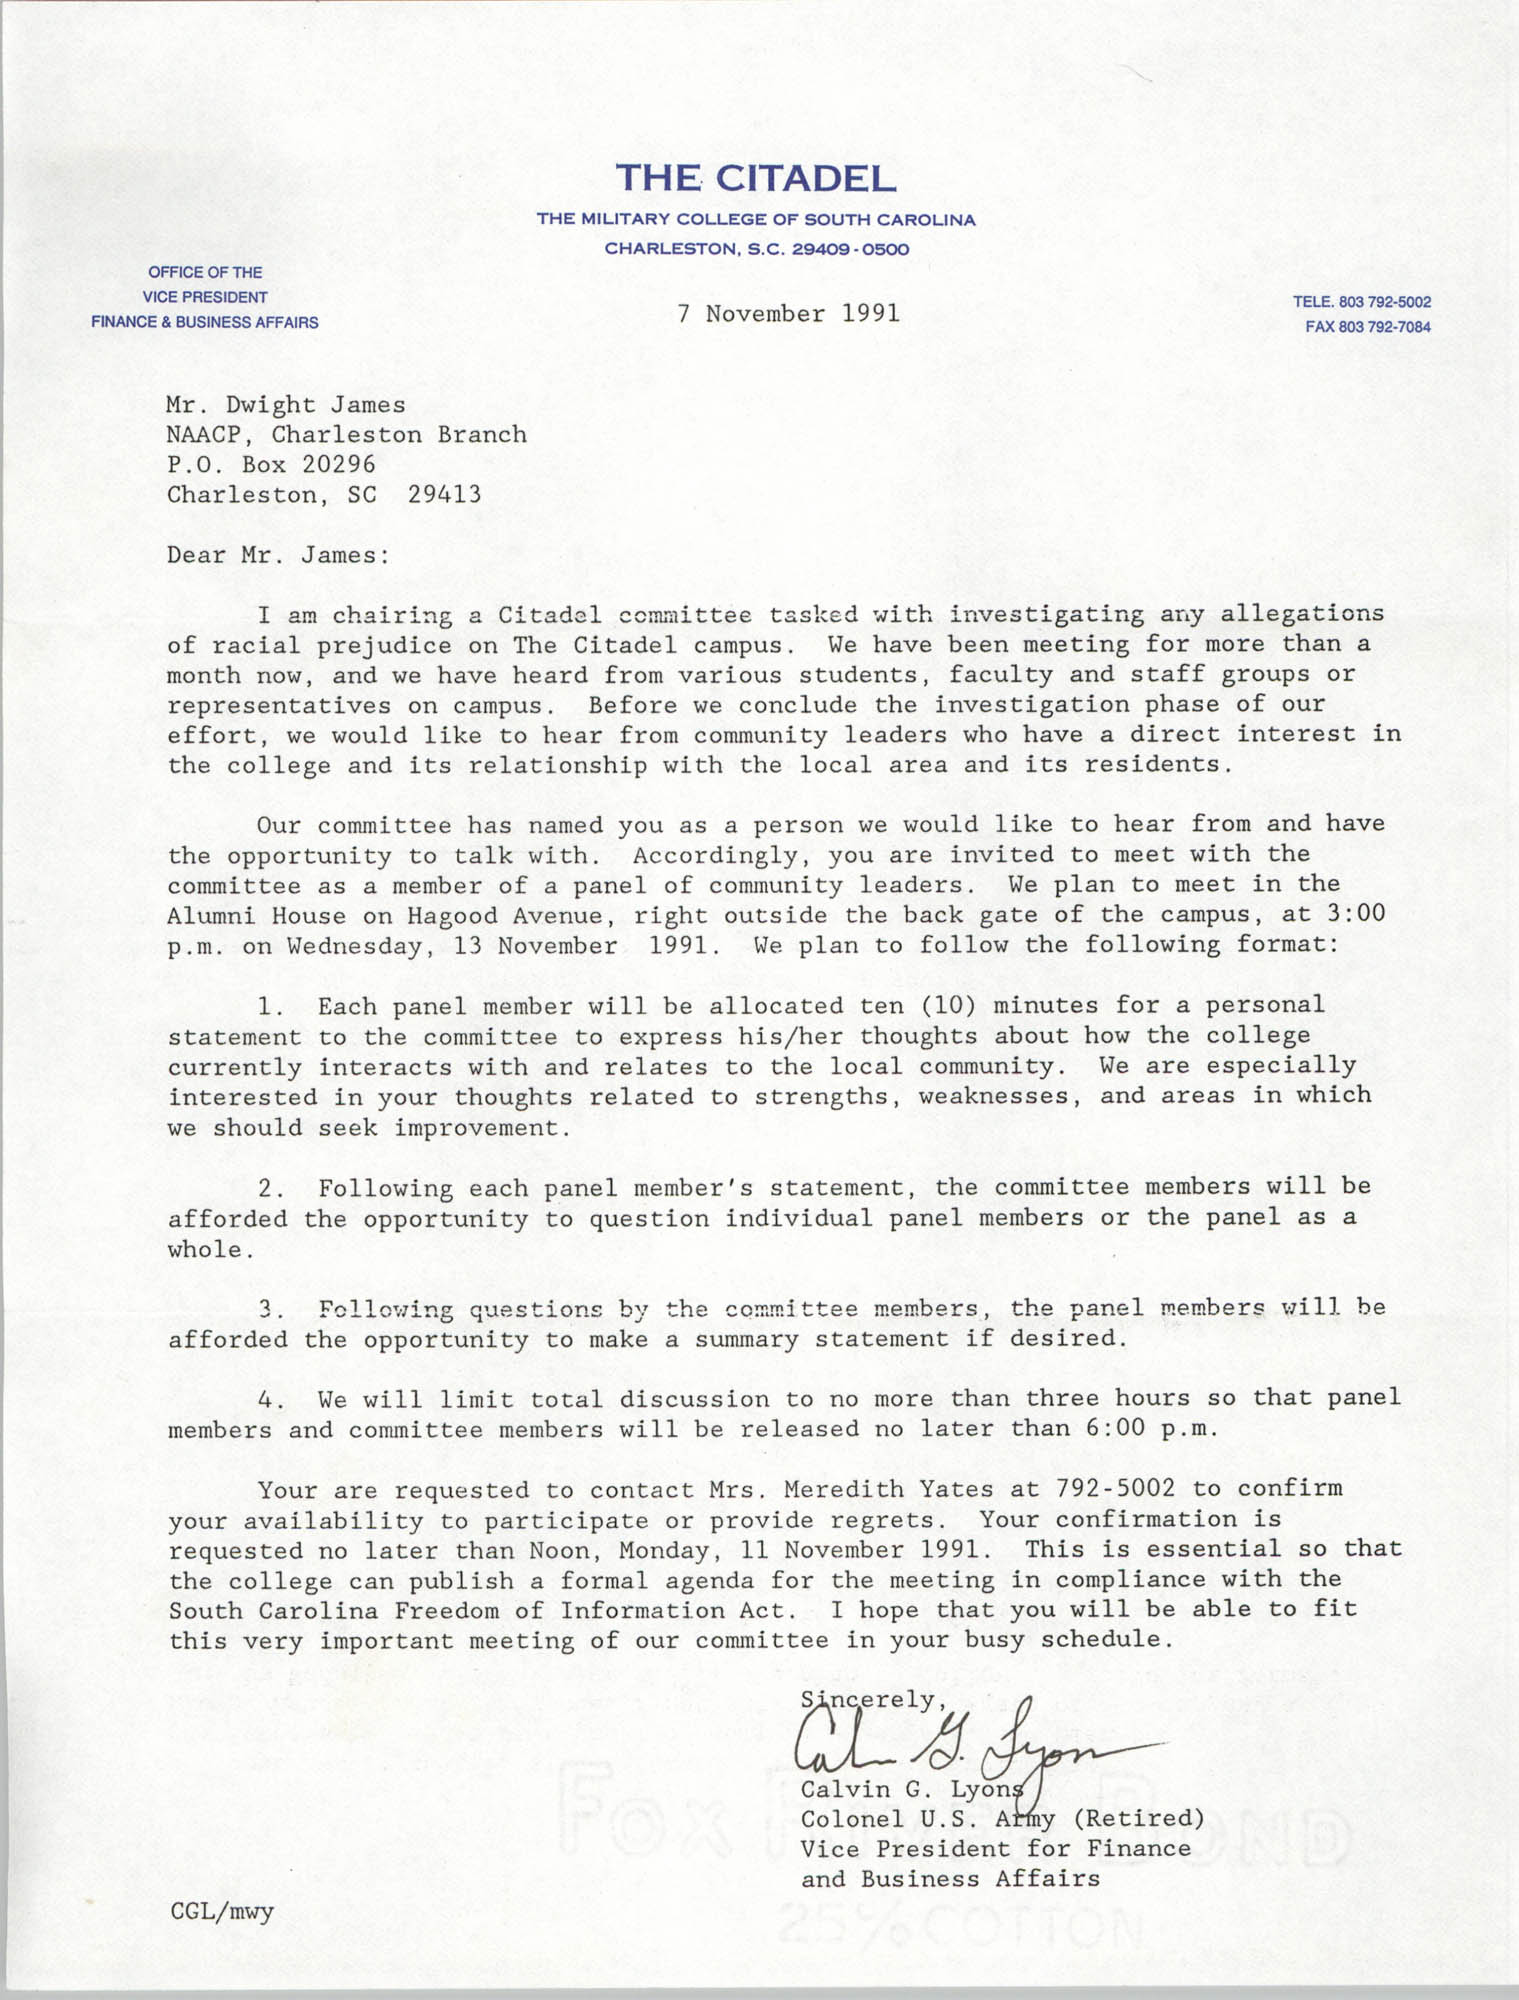 Letter from Calvin G. Lyons to Dwight James, November 7, 1991